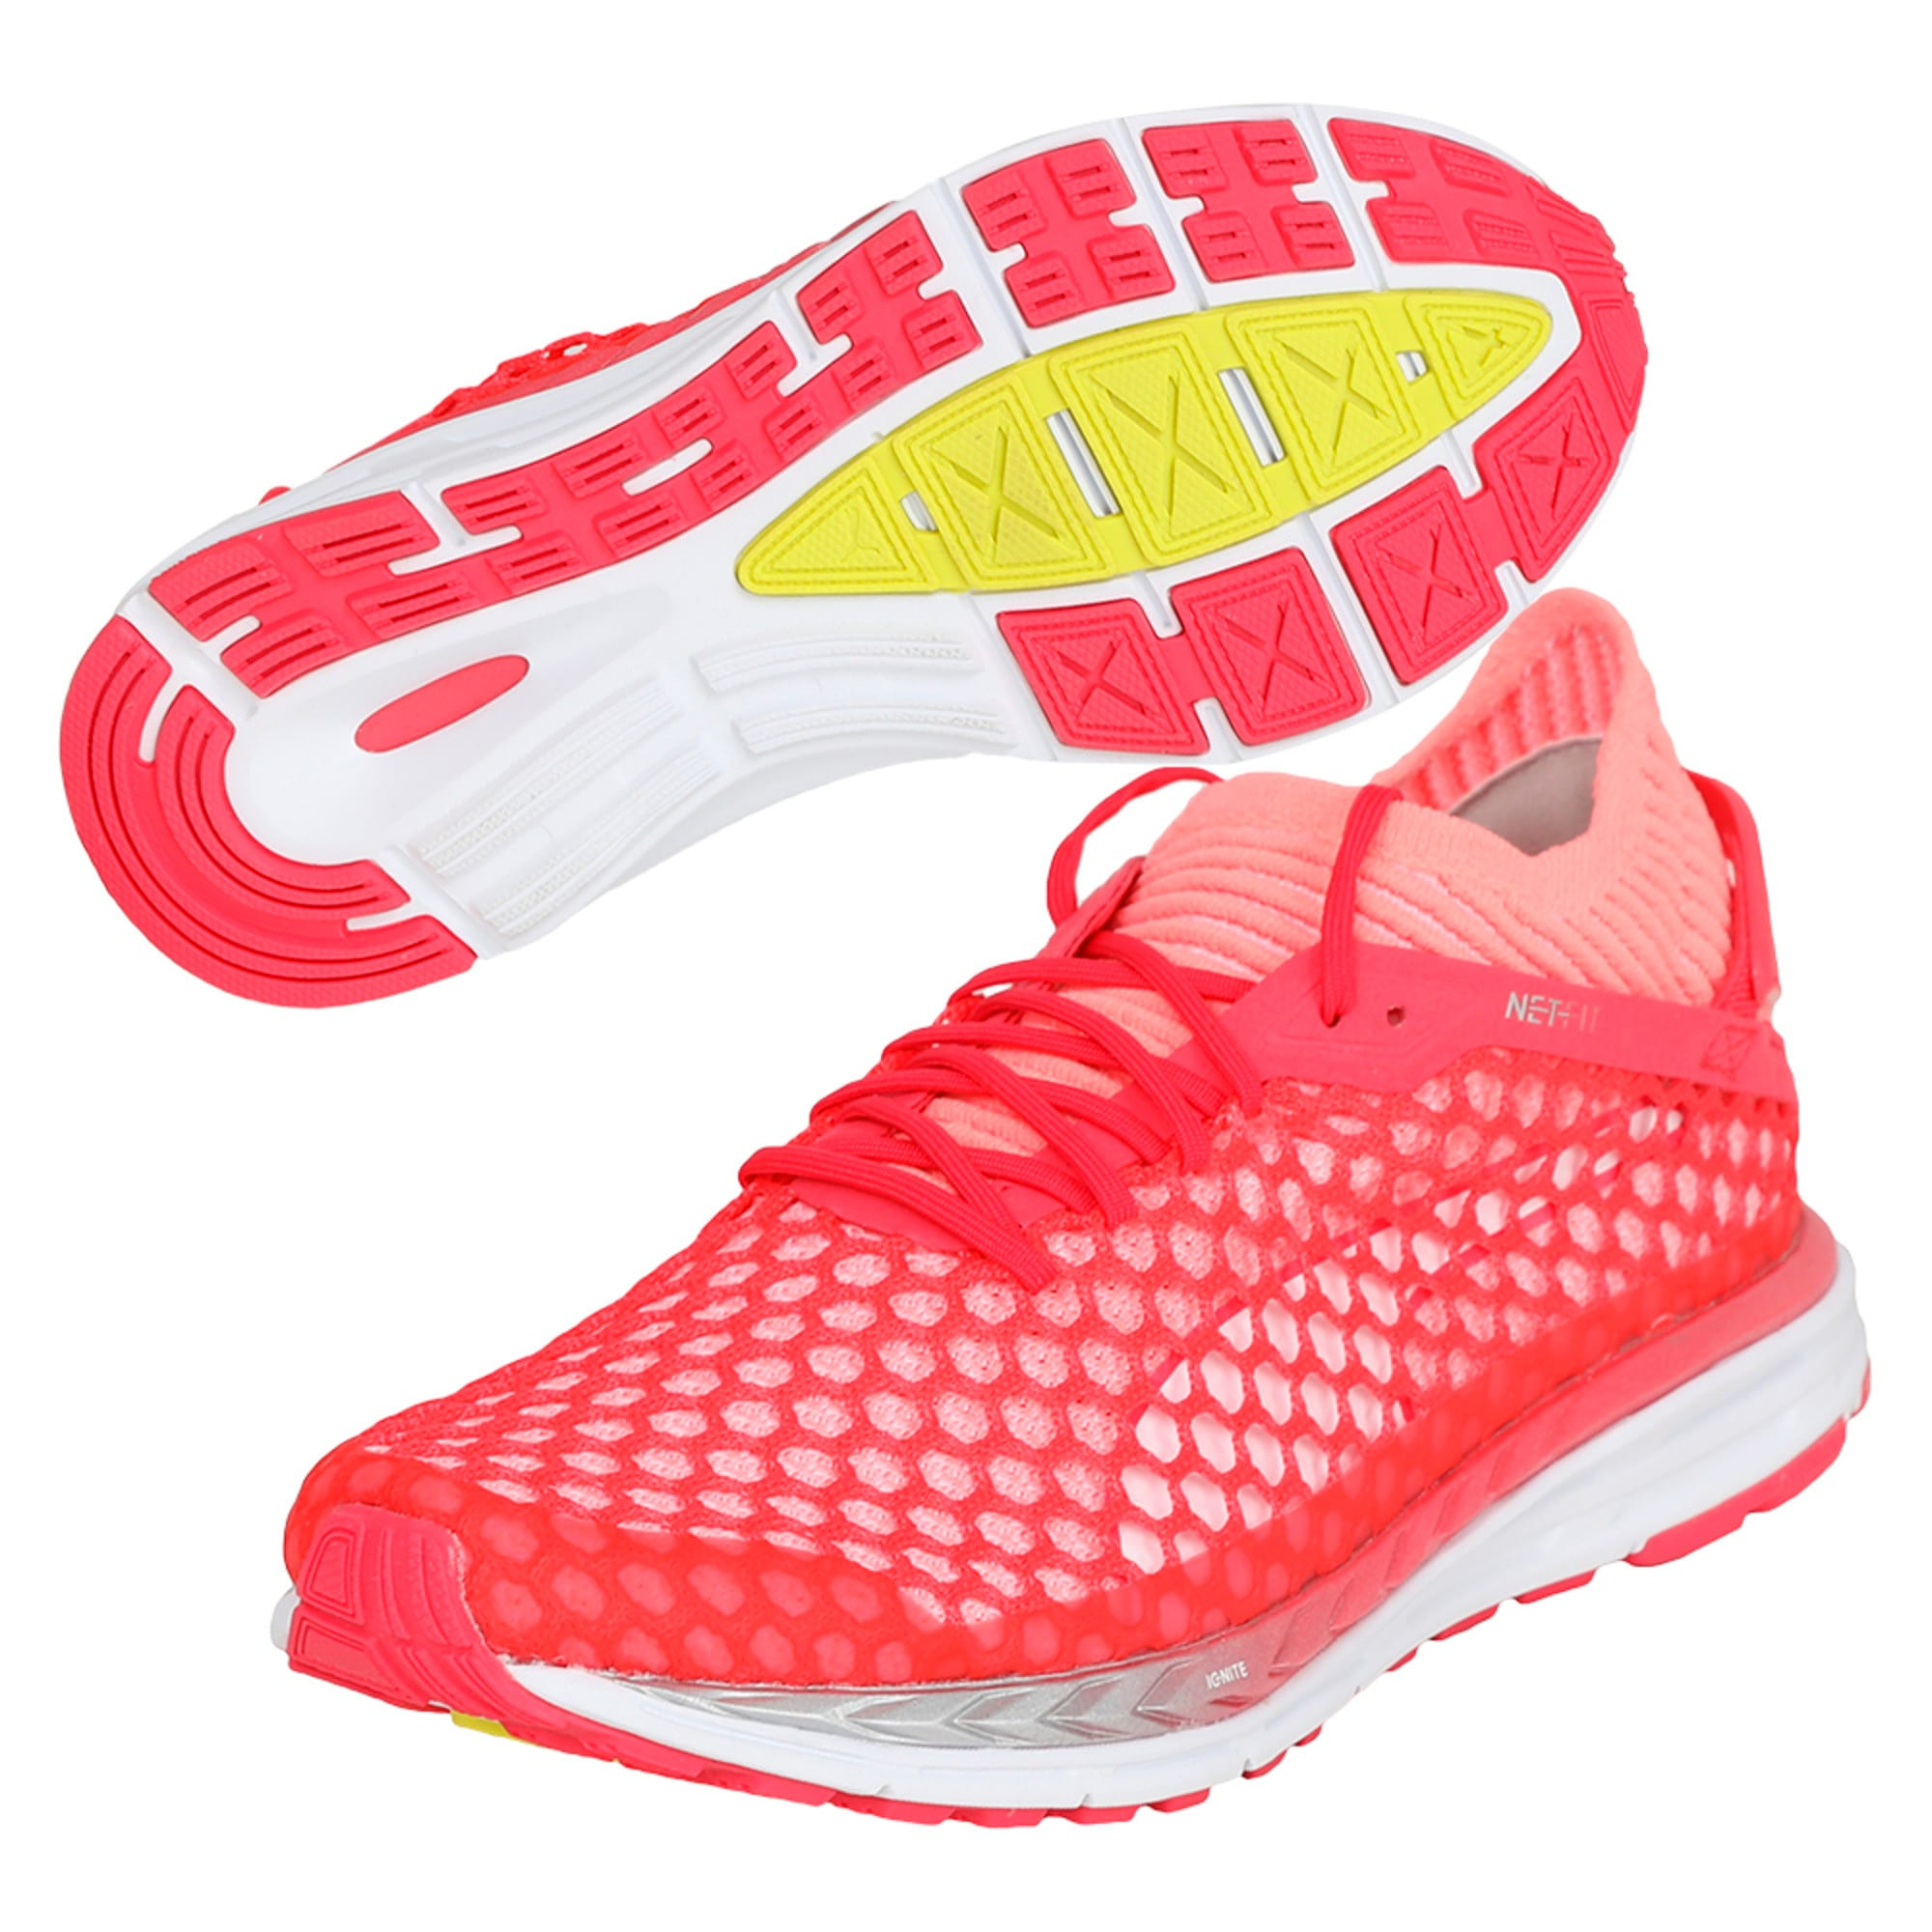 Thumbnail 6 of Speed IGNITE NETFIT 2 Women's Running Shoes, Pink-Fluo Peach-White, medium-IND